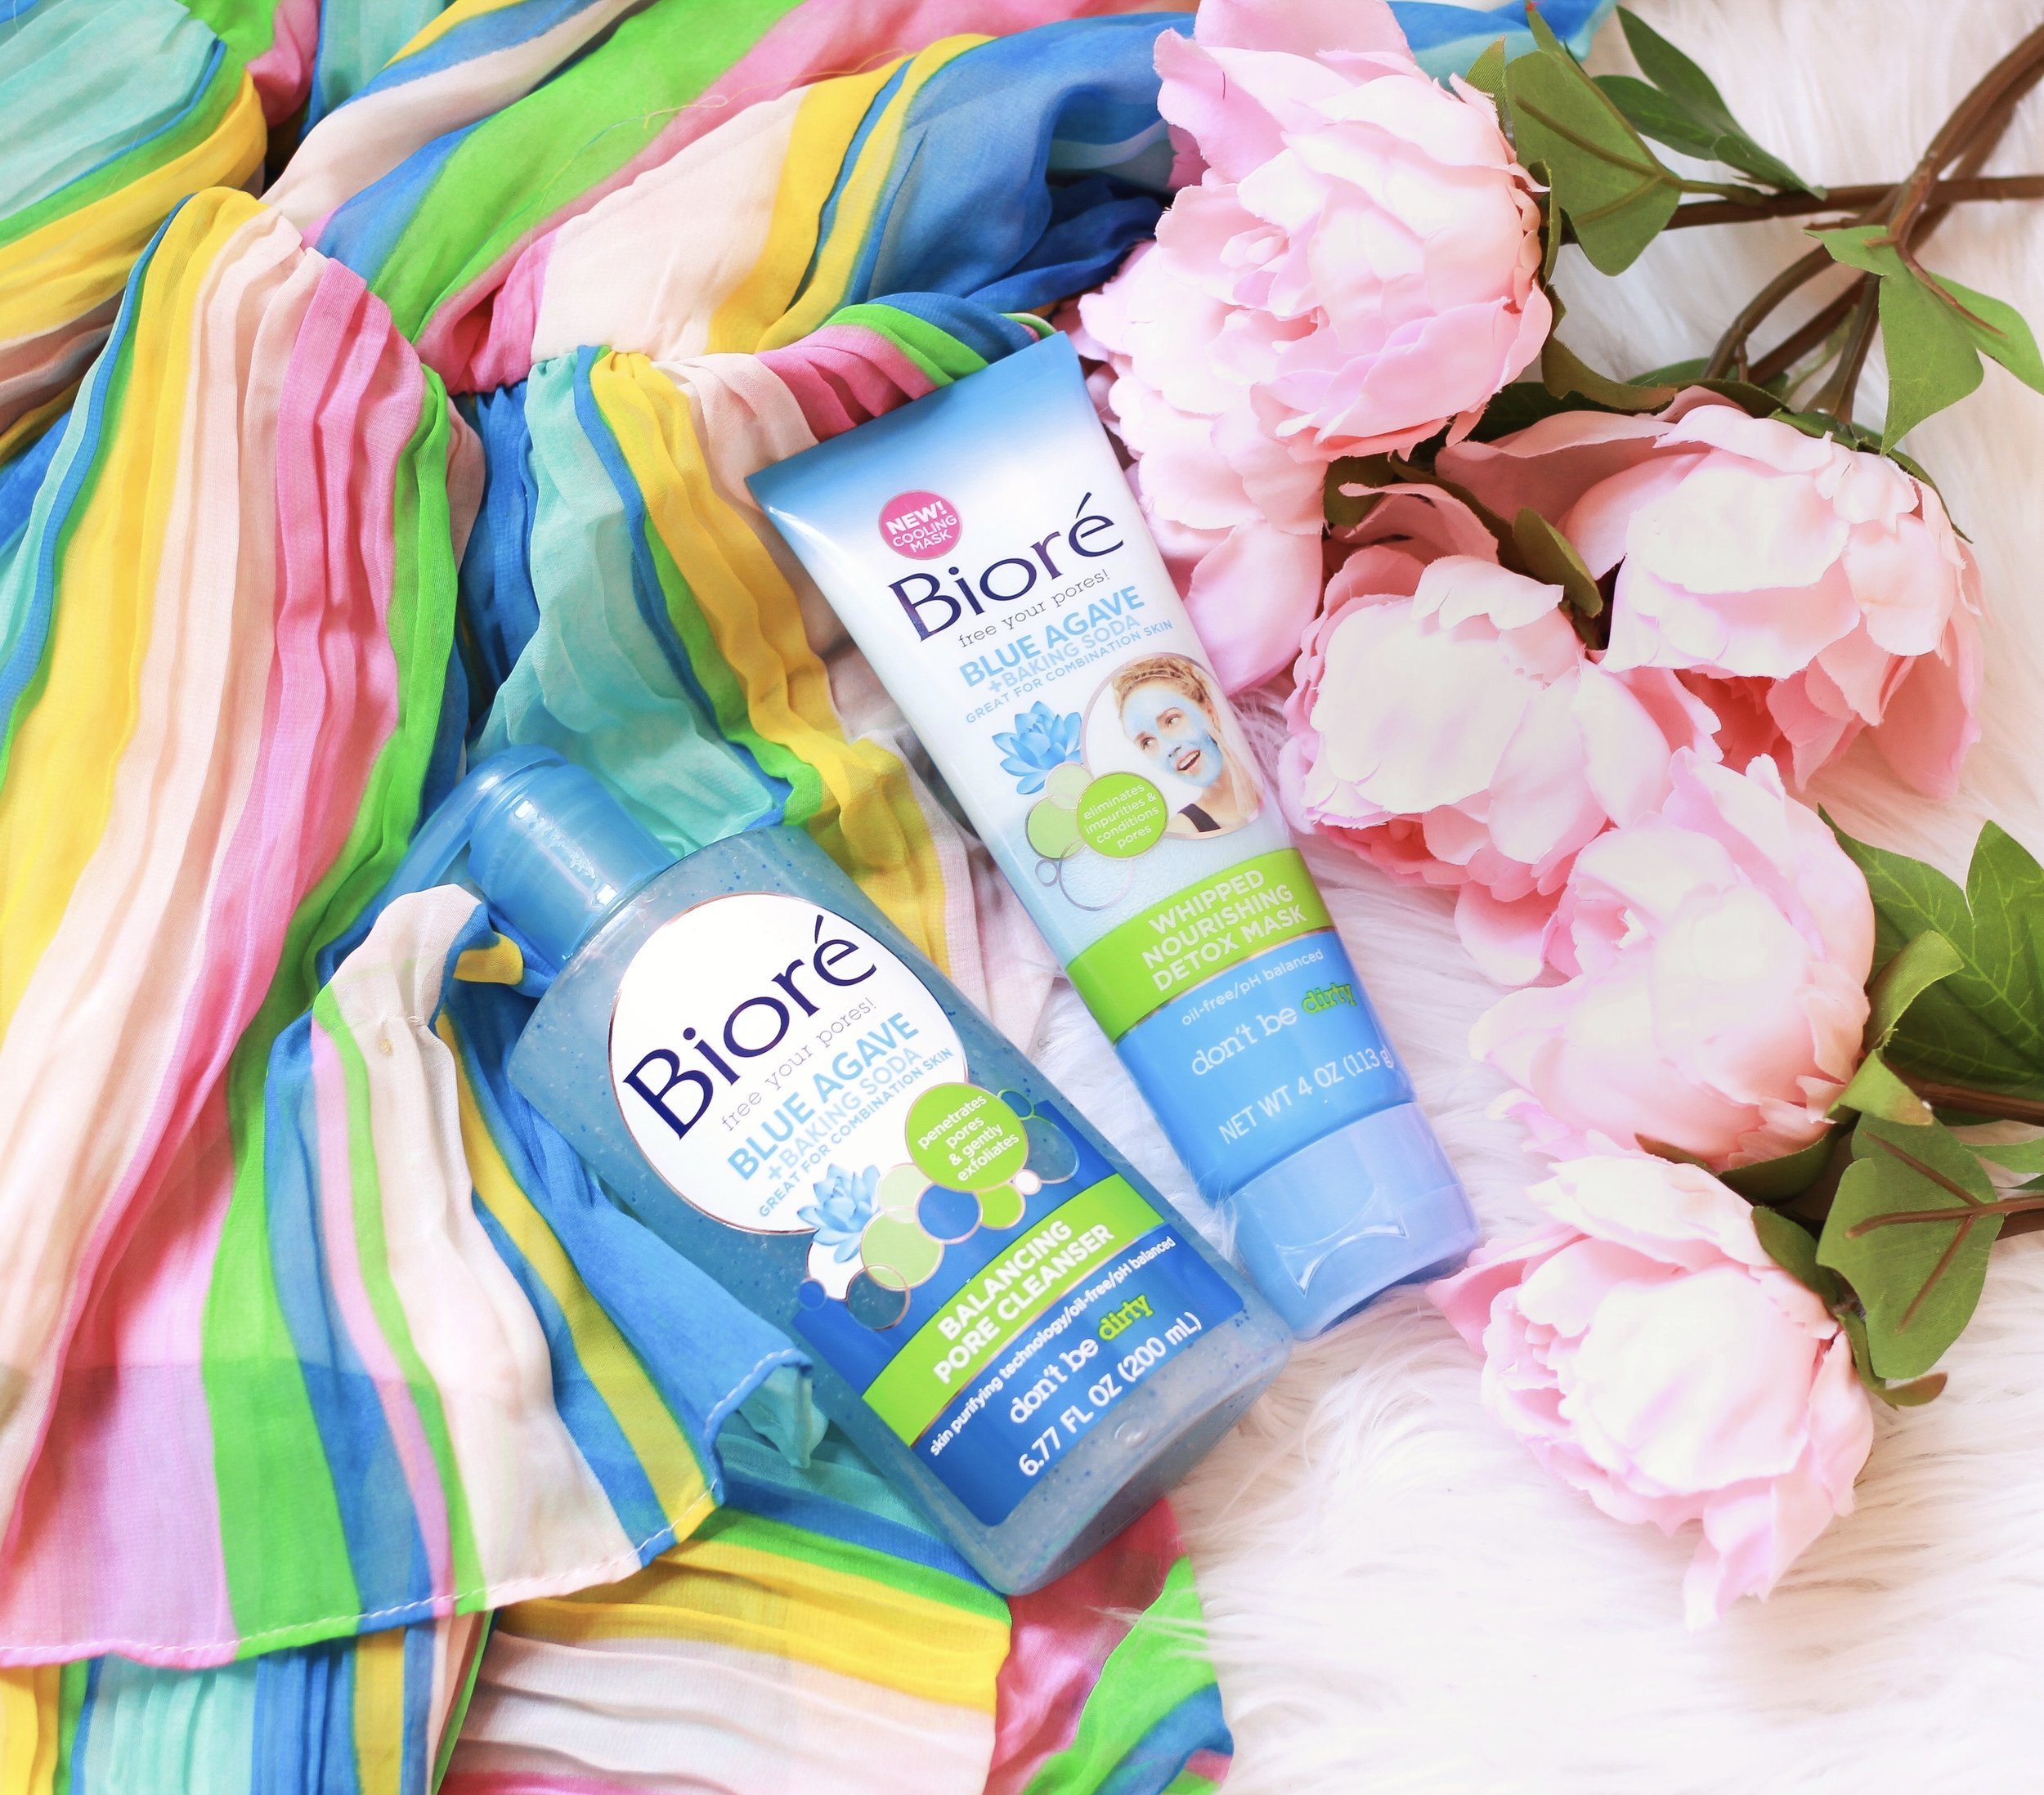 Visit Walmart.com, Amazon.com & Target.com to try these products for themselves, or go to Biore.com to learn more!